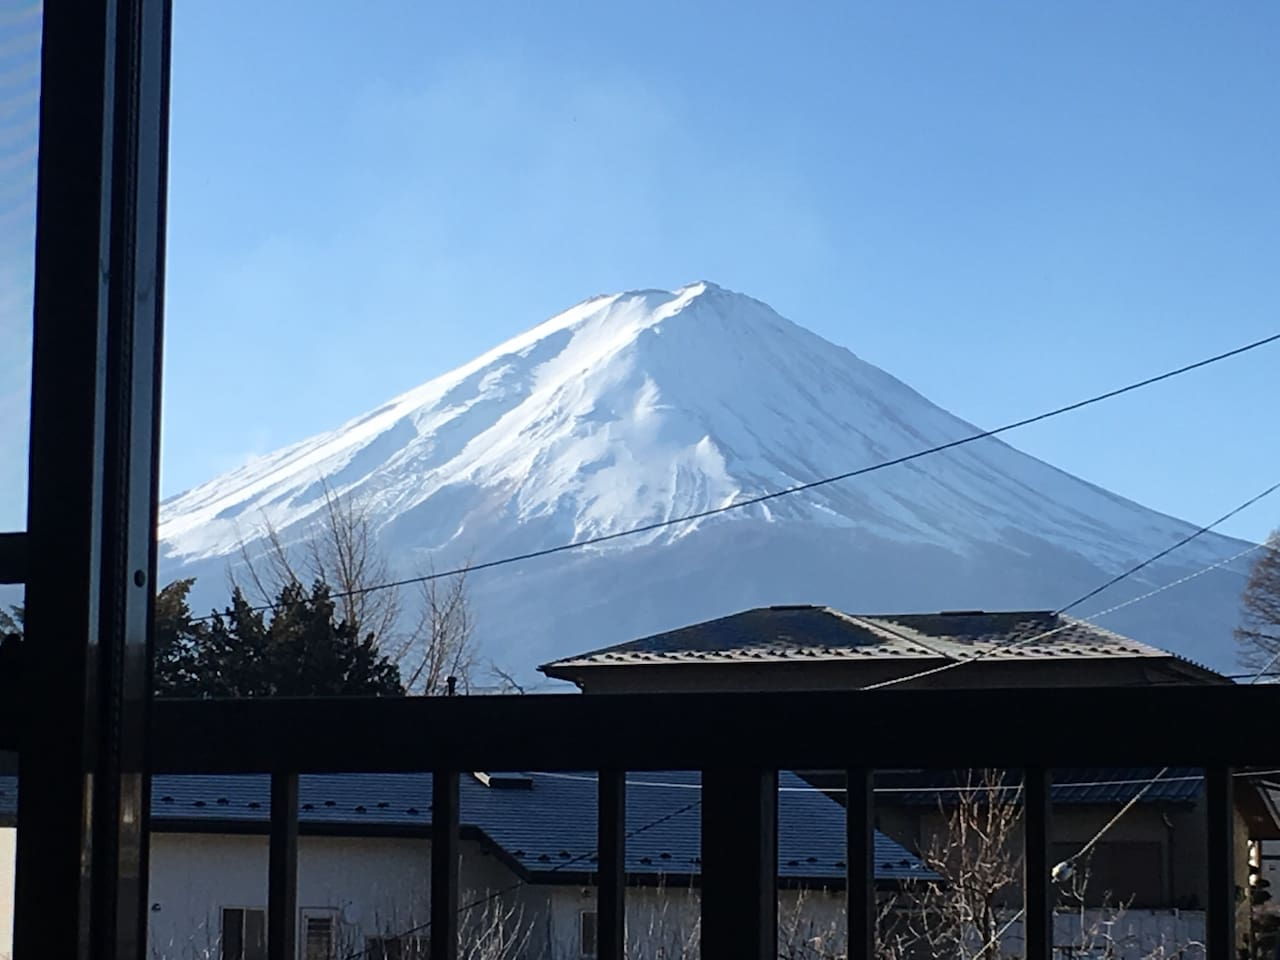 You can see the grate Mt. Fuji from the two rooms!!